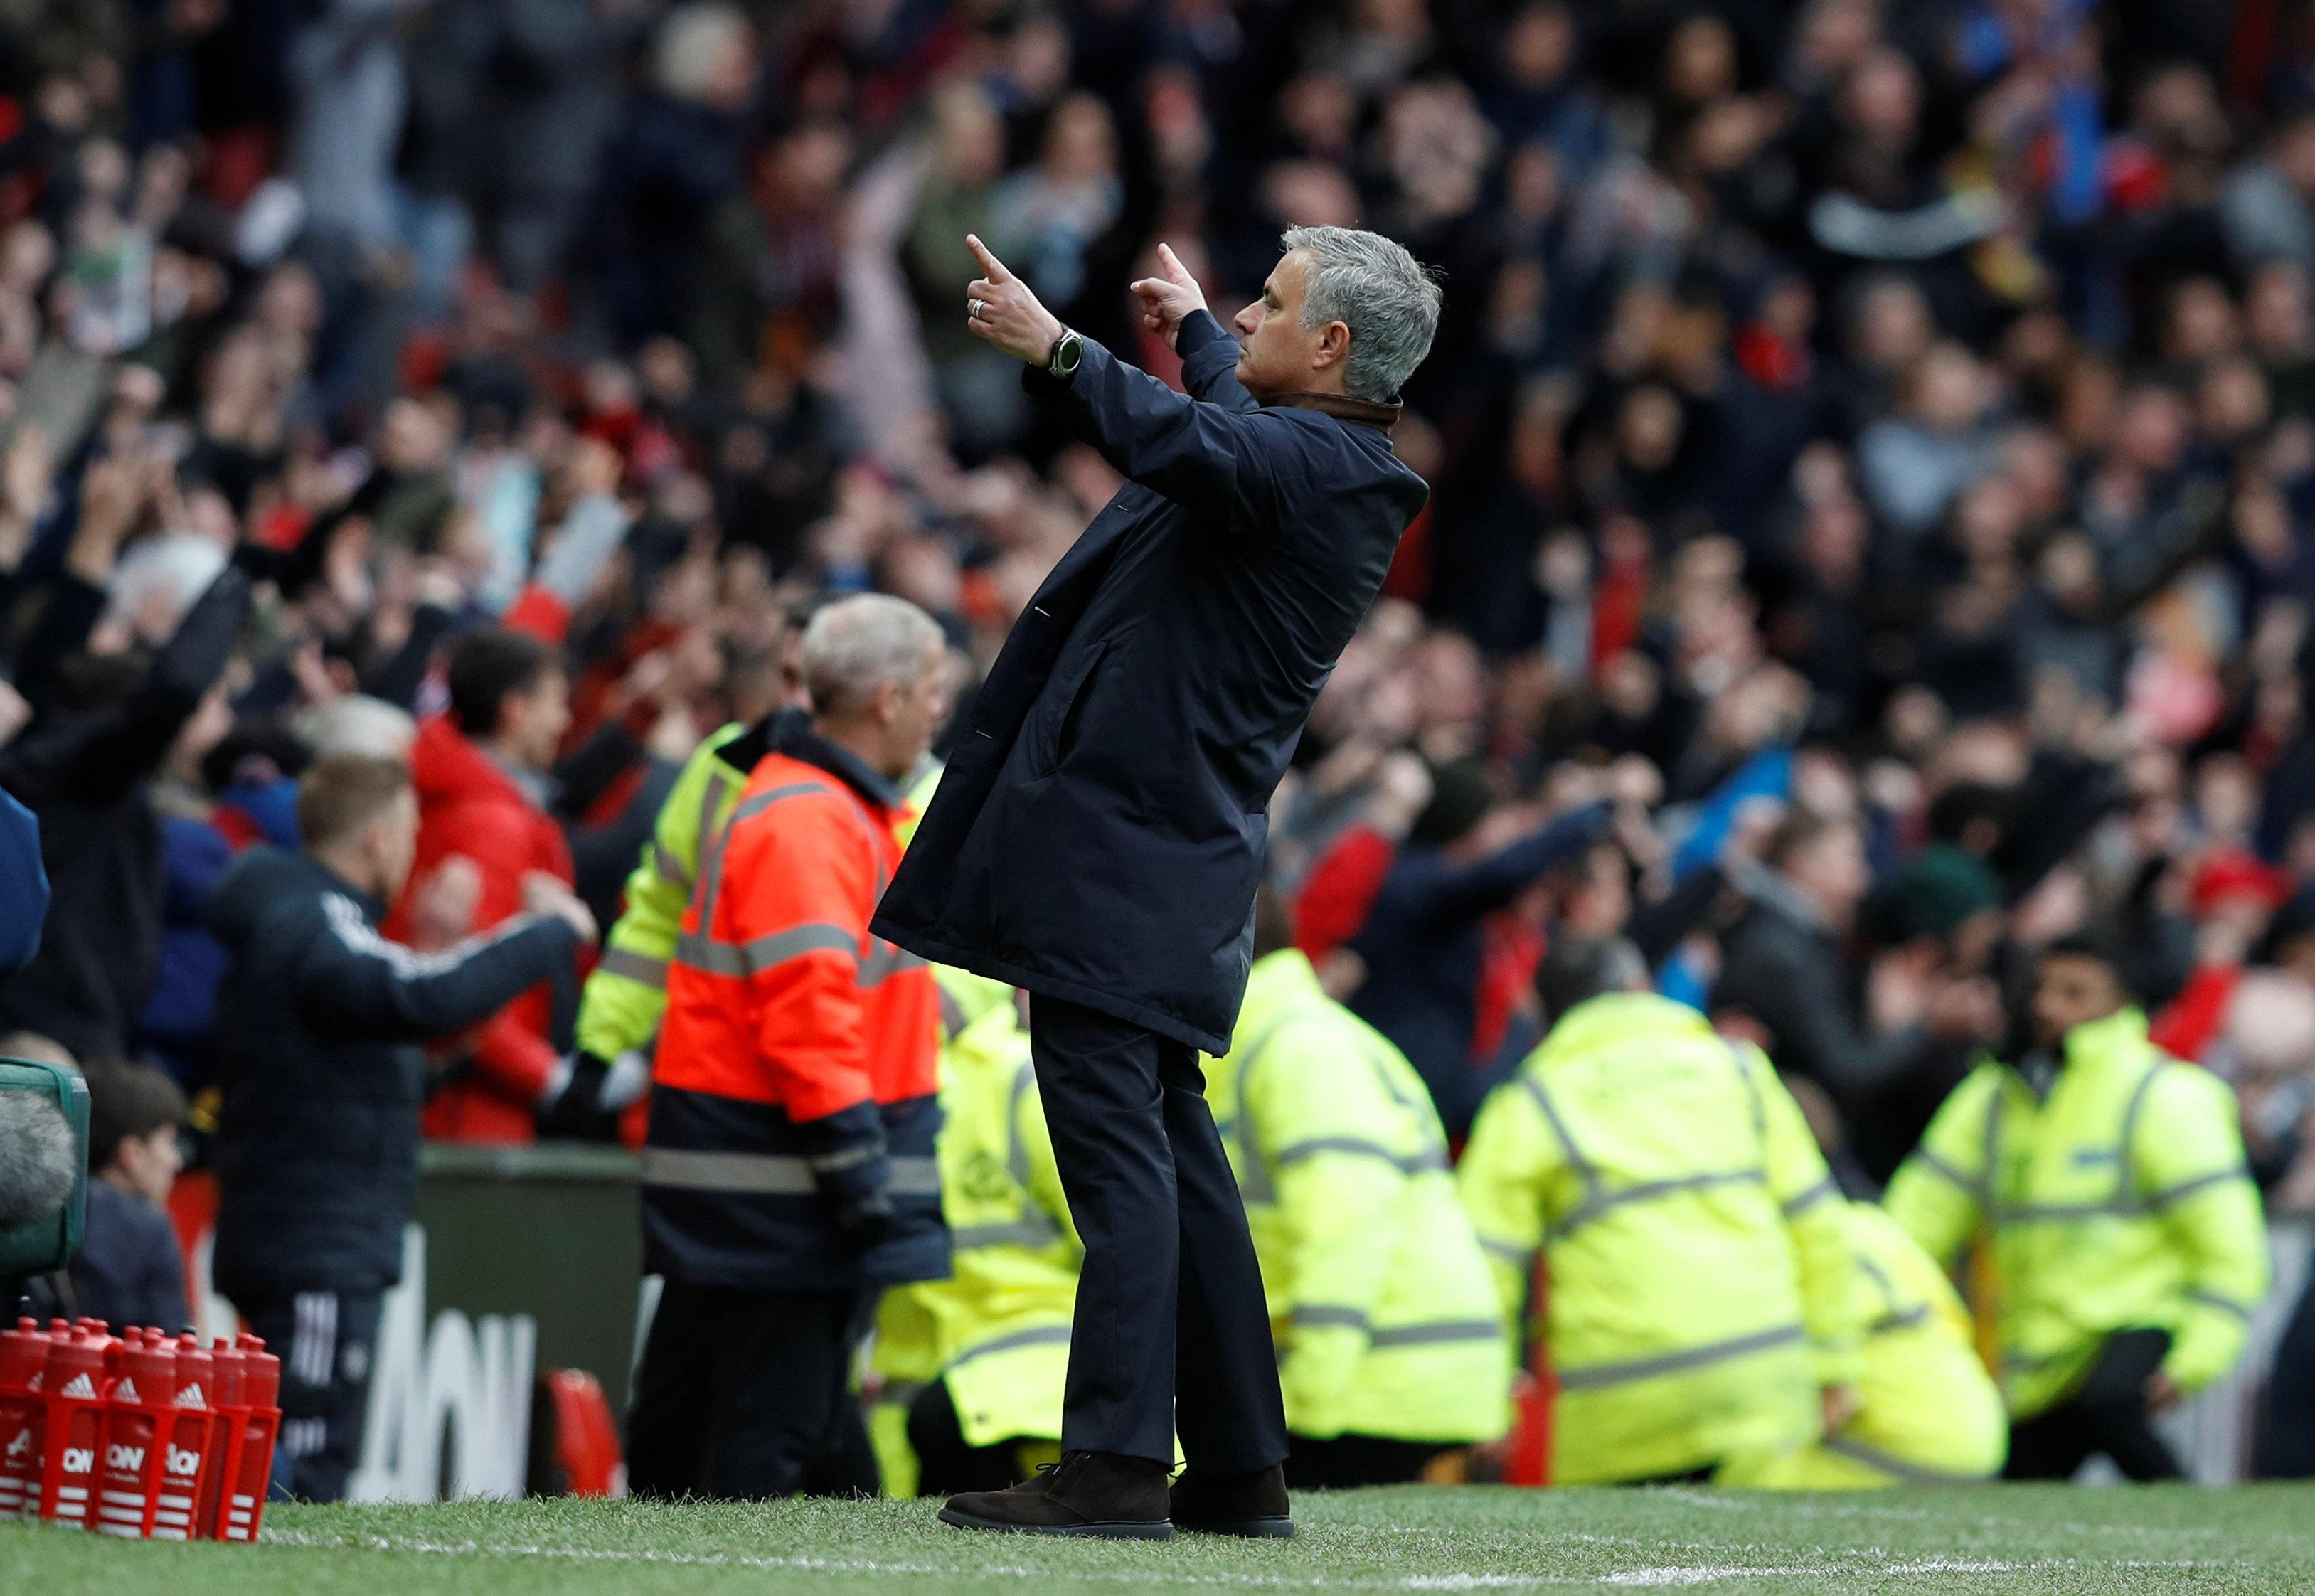 For his opposite number Jose Mourinho, the day couldn't have ended any better